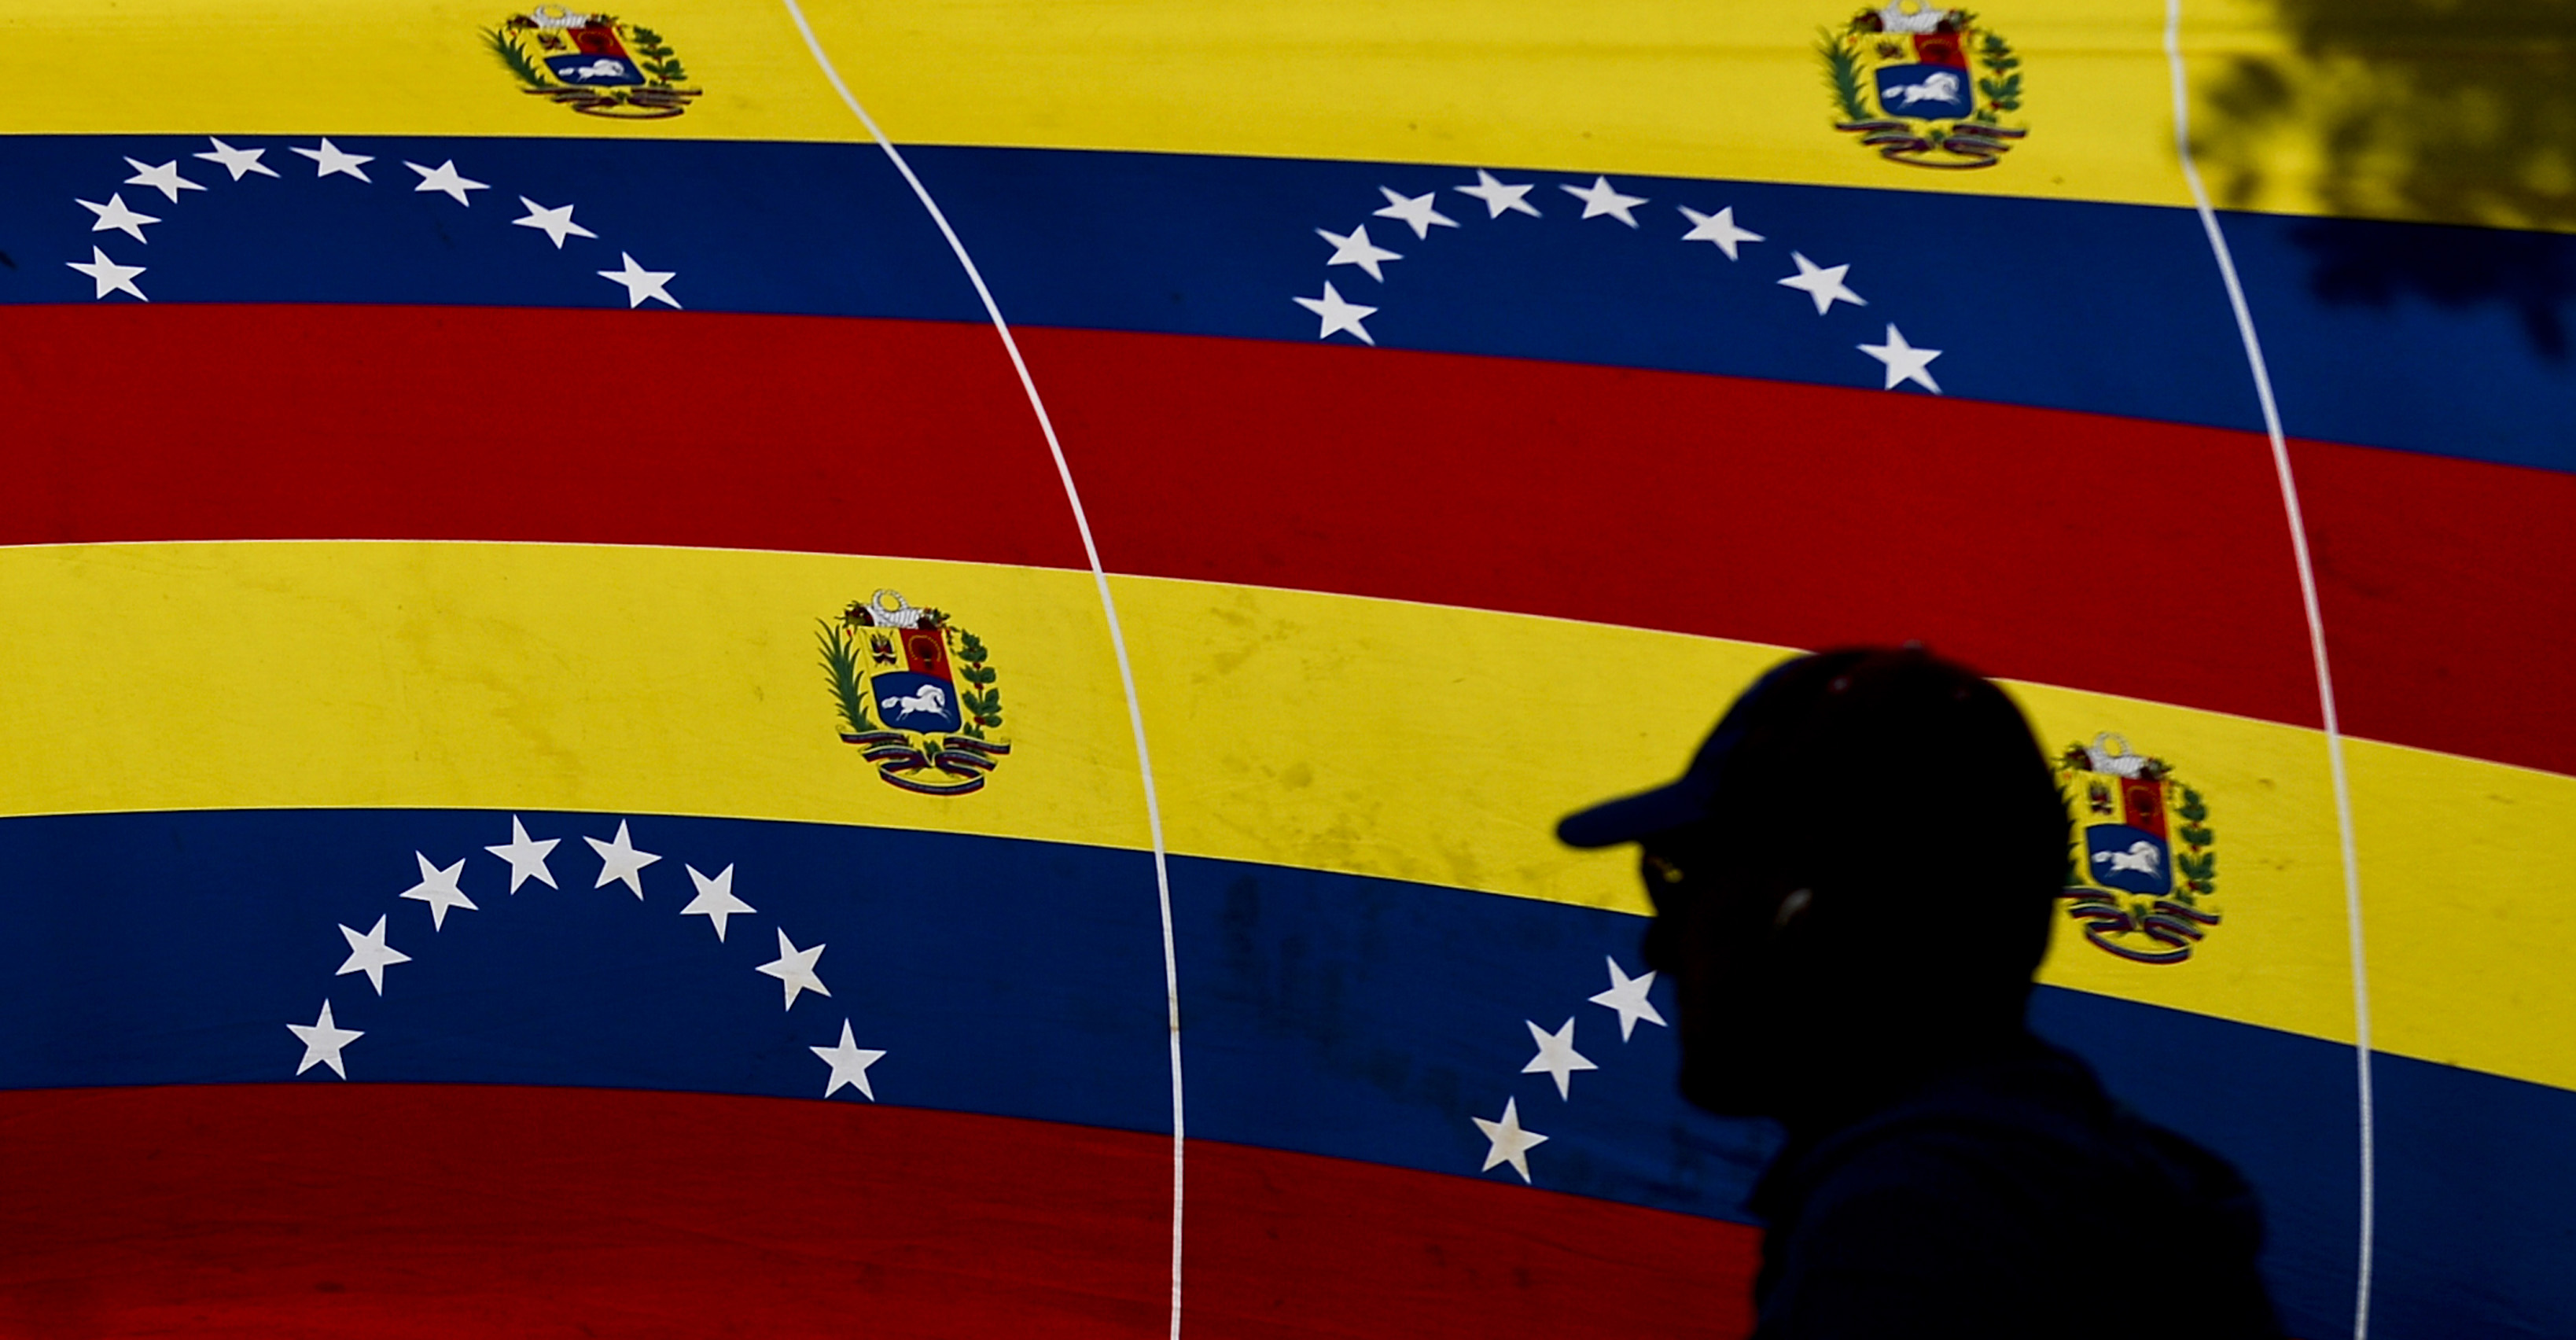 A man passes by national flags at a polling station during Venezuela's legislative election in Caracas on Dec. 6, 2015.